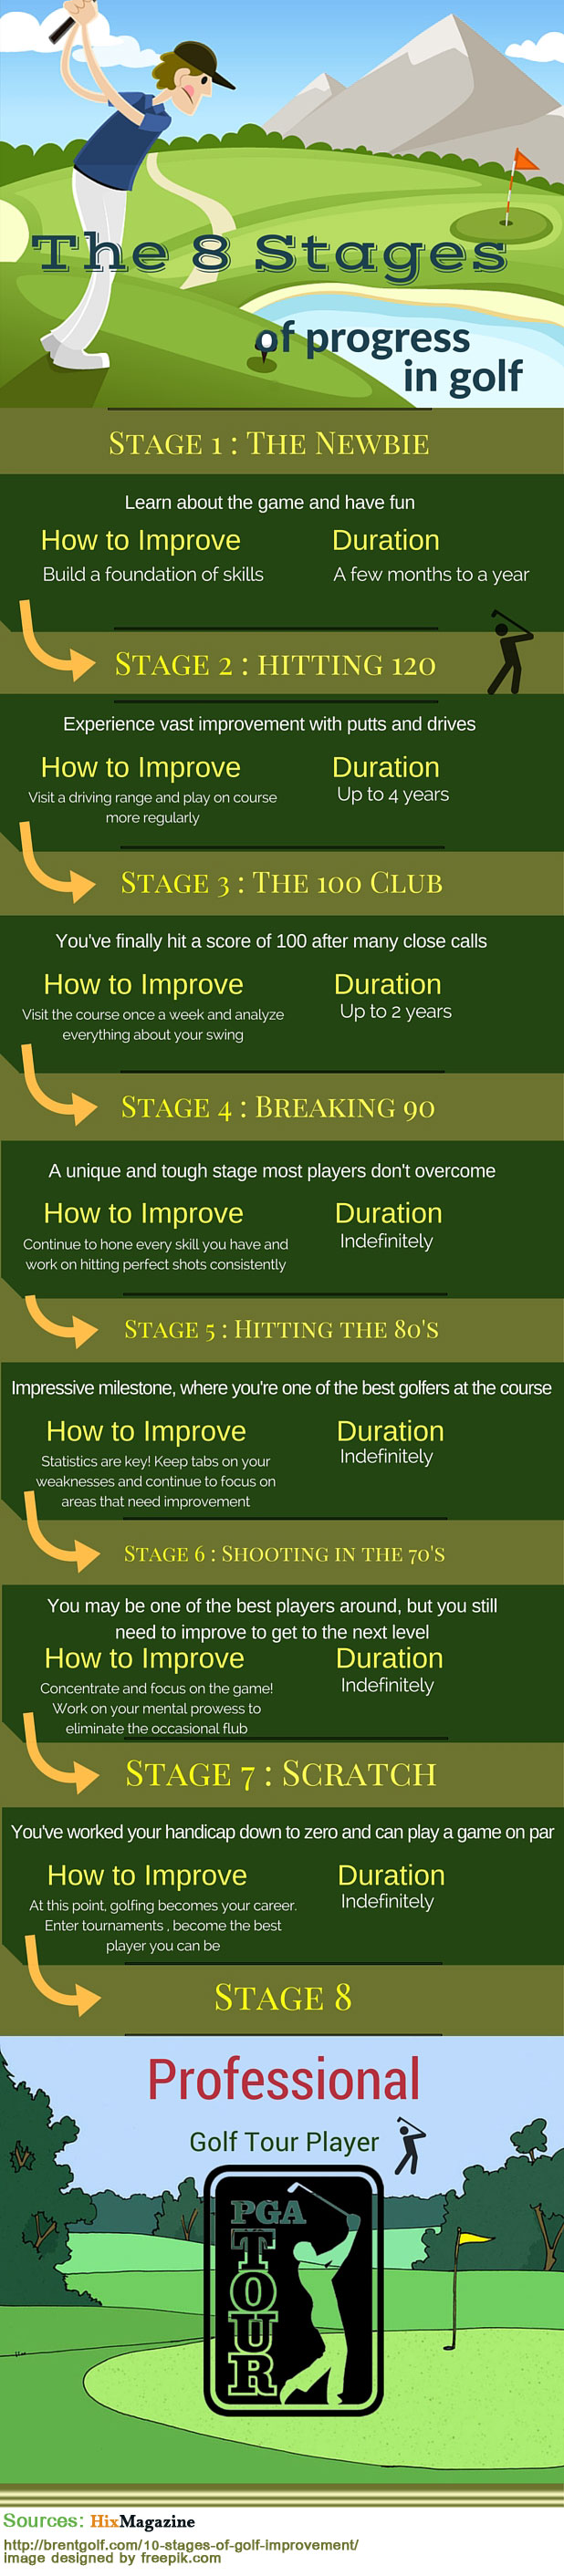 Stages of progression in golf infographic